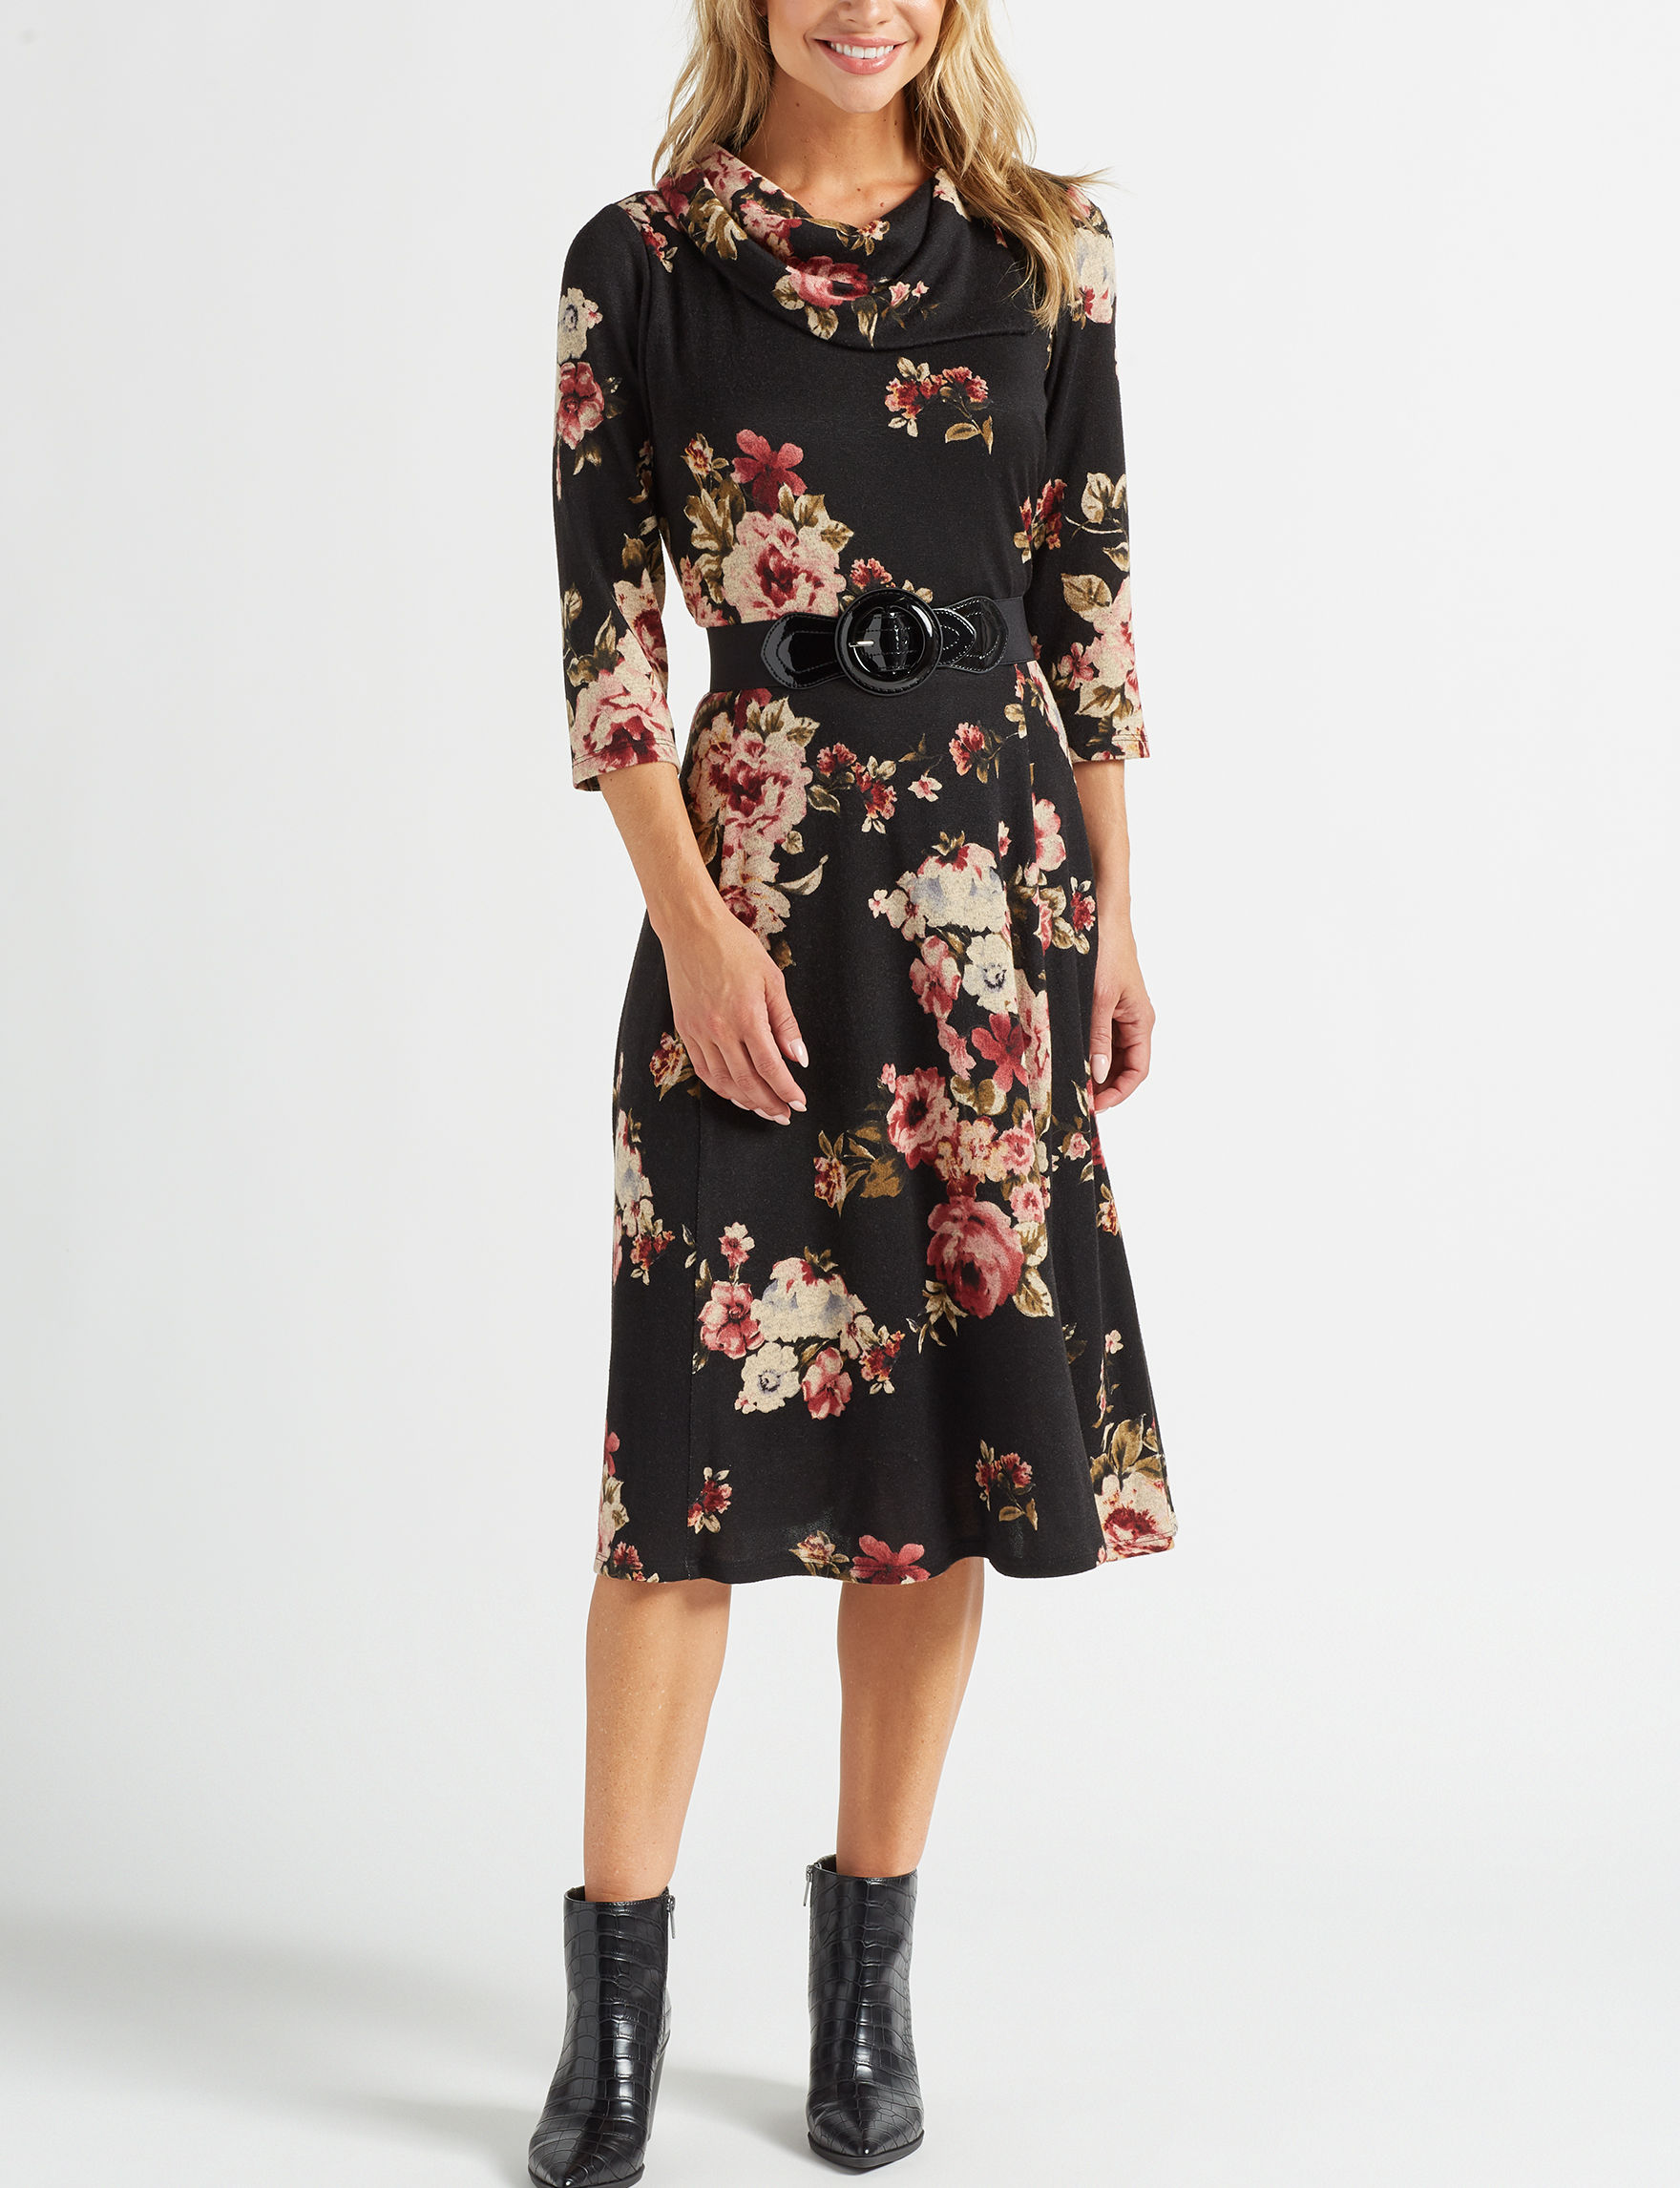 Robbie Bee Black Floral Everyday & Casual Sweater Dresses